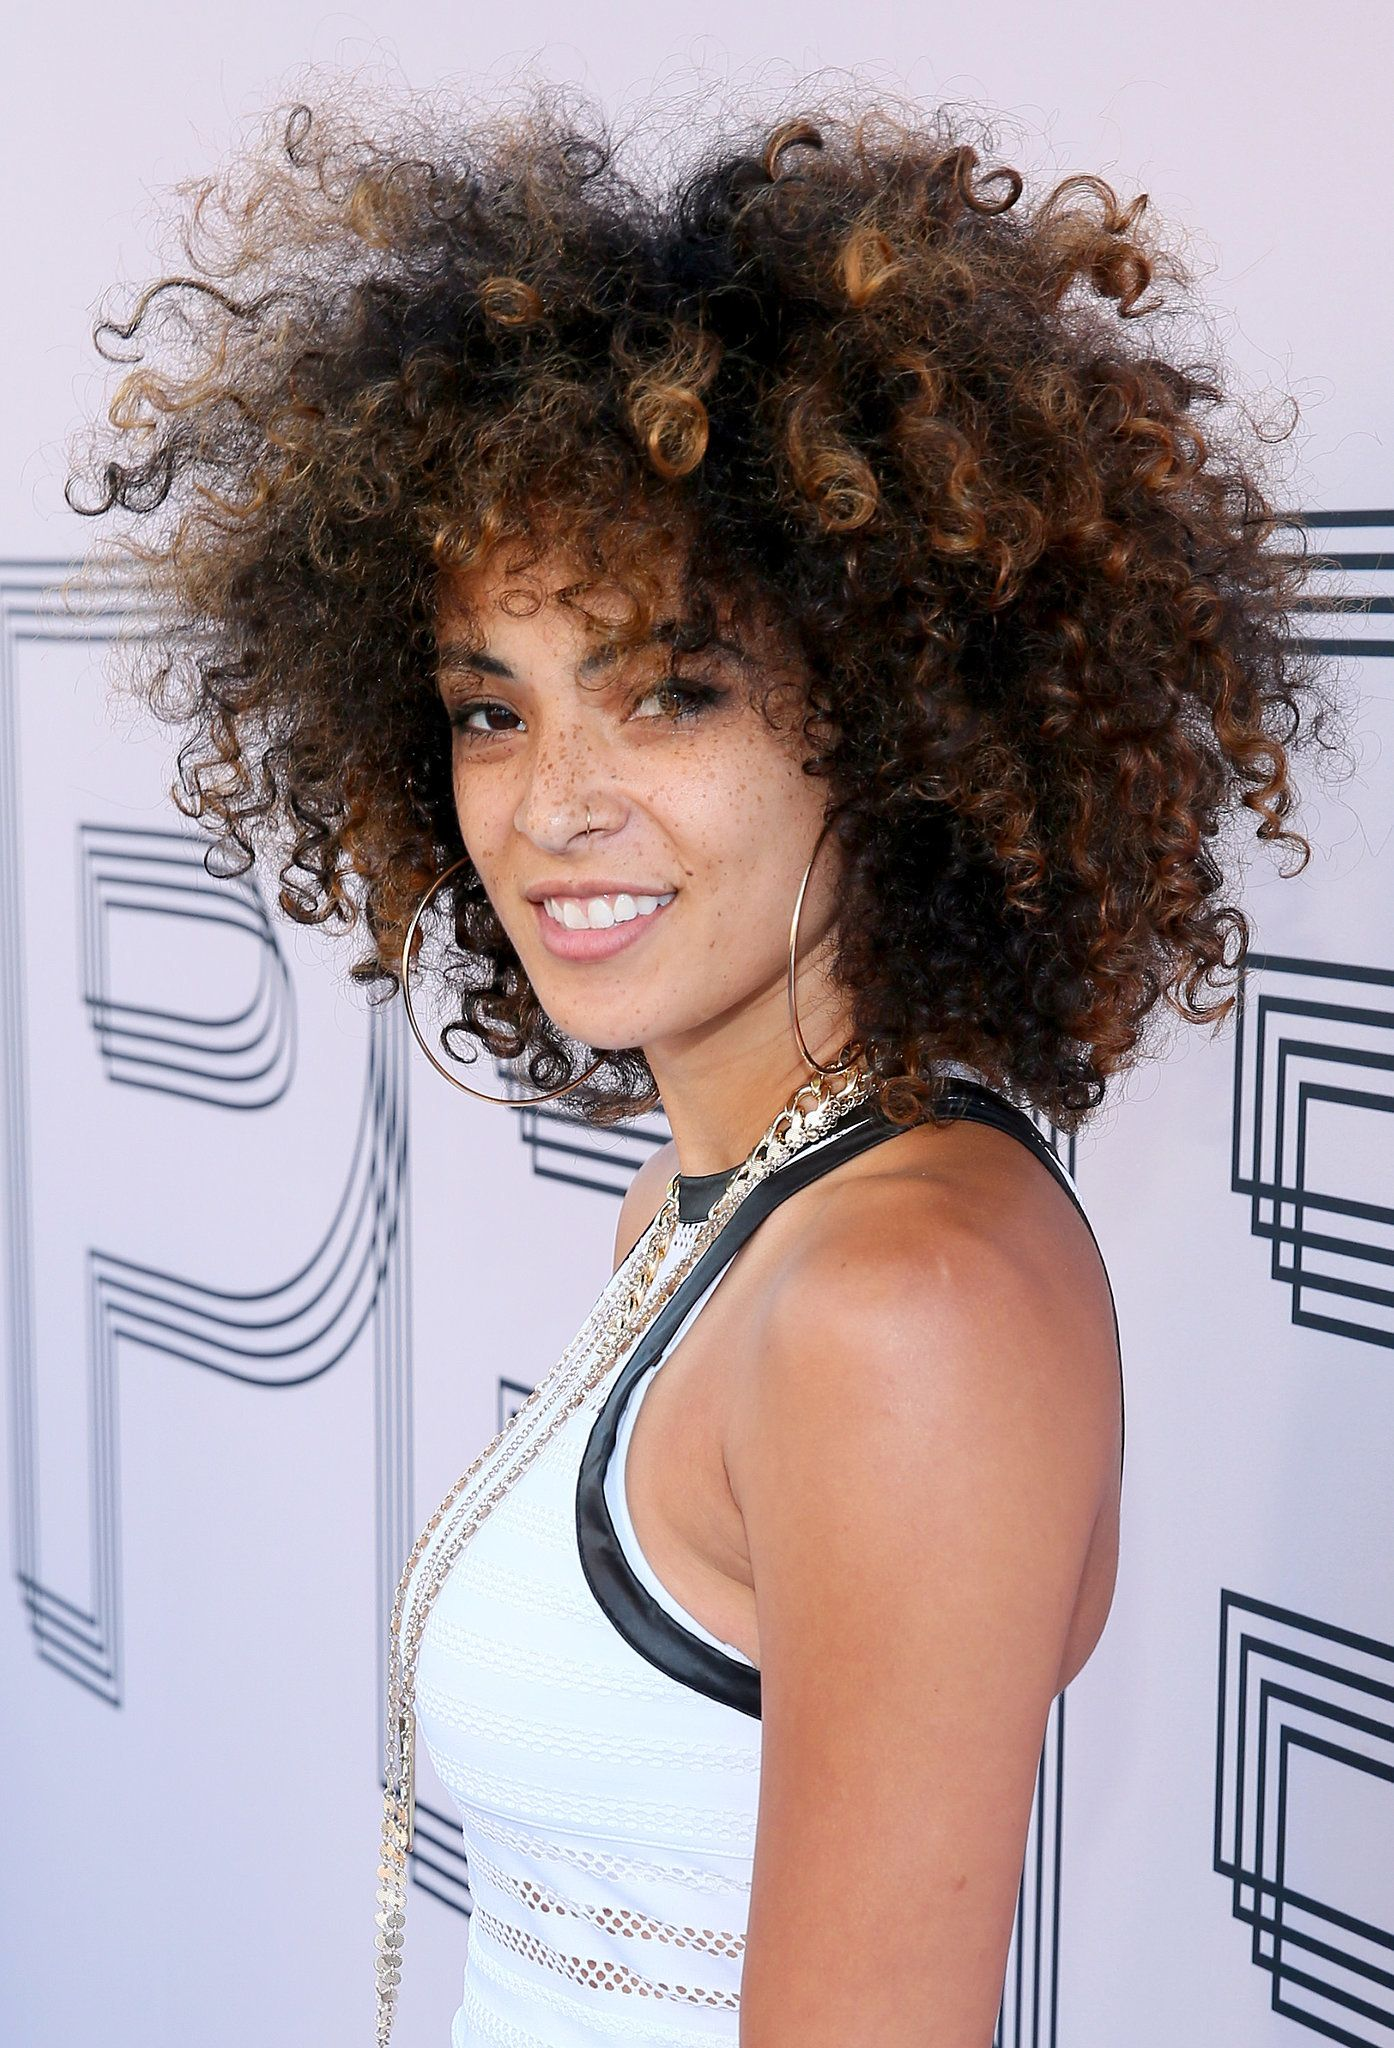 best images about natural celebrity women 17 best images about natural celebrity women pictures of celebrities elle varner and lauryn hill